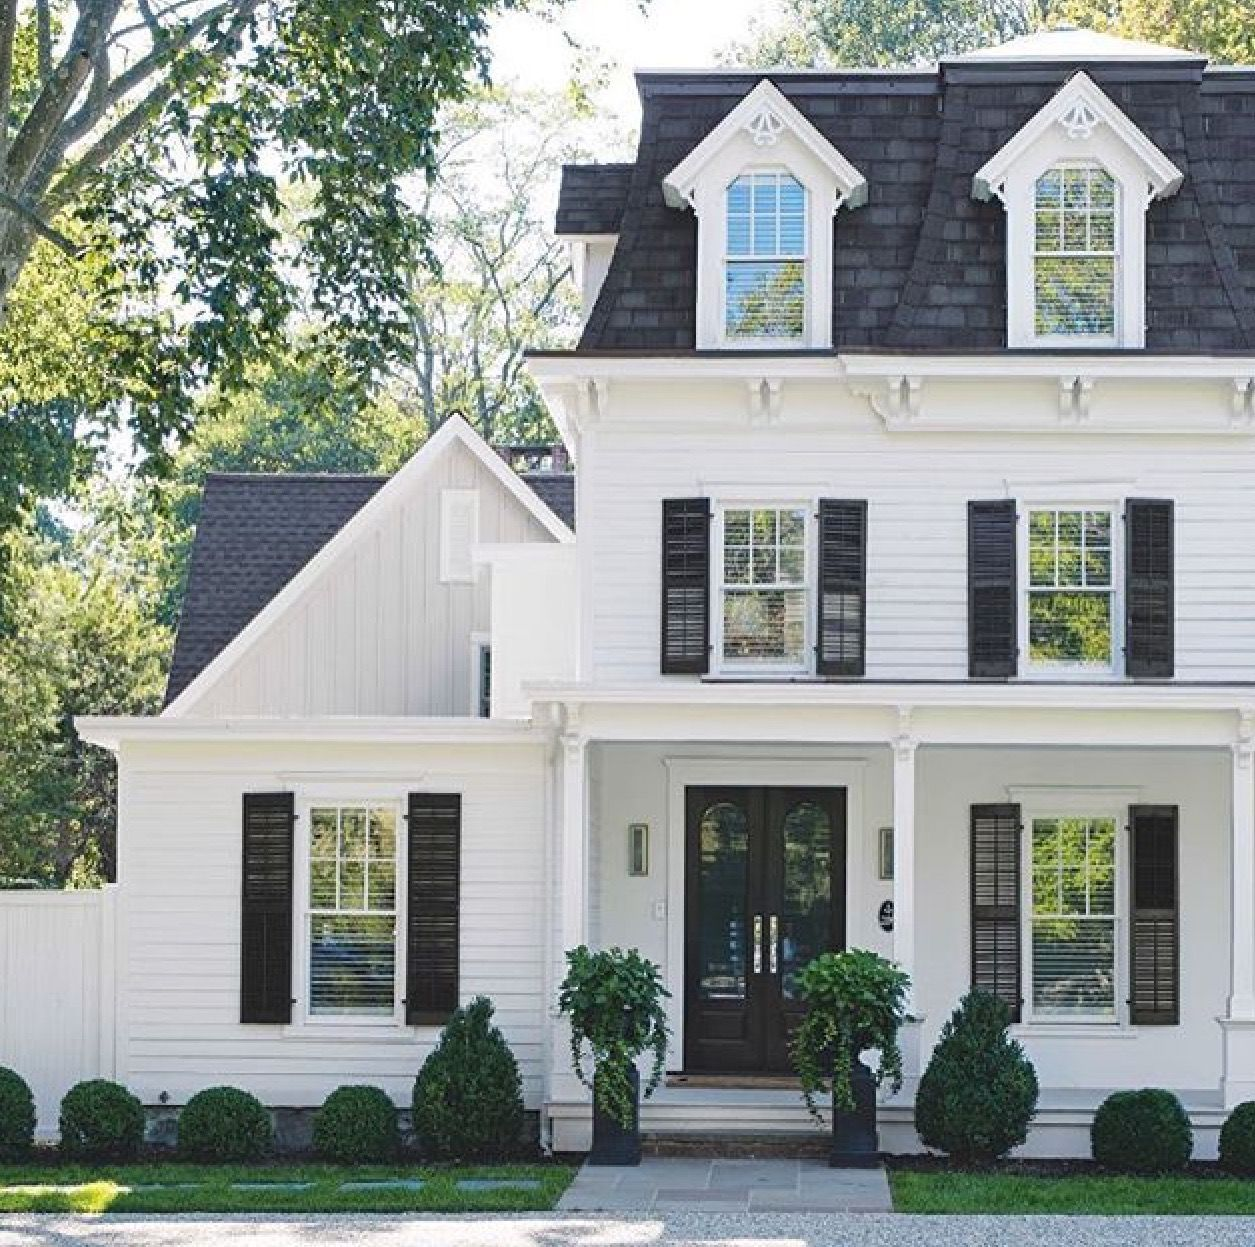 Best More Ideas Below Before And After Mansard Roof Remodel 400 x 300